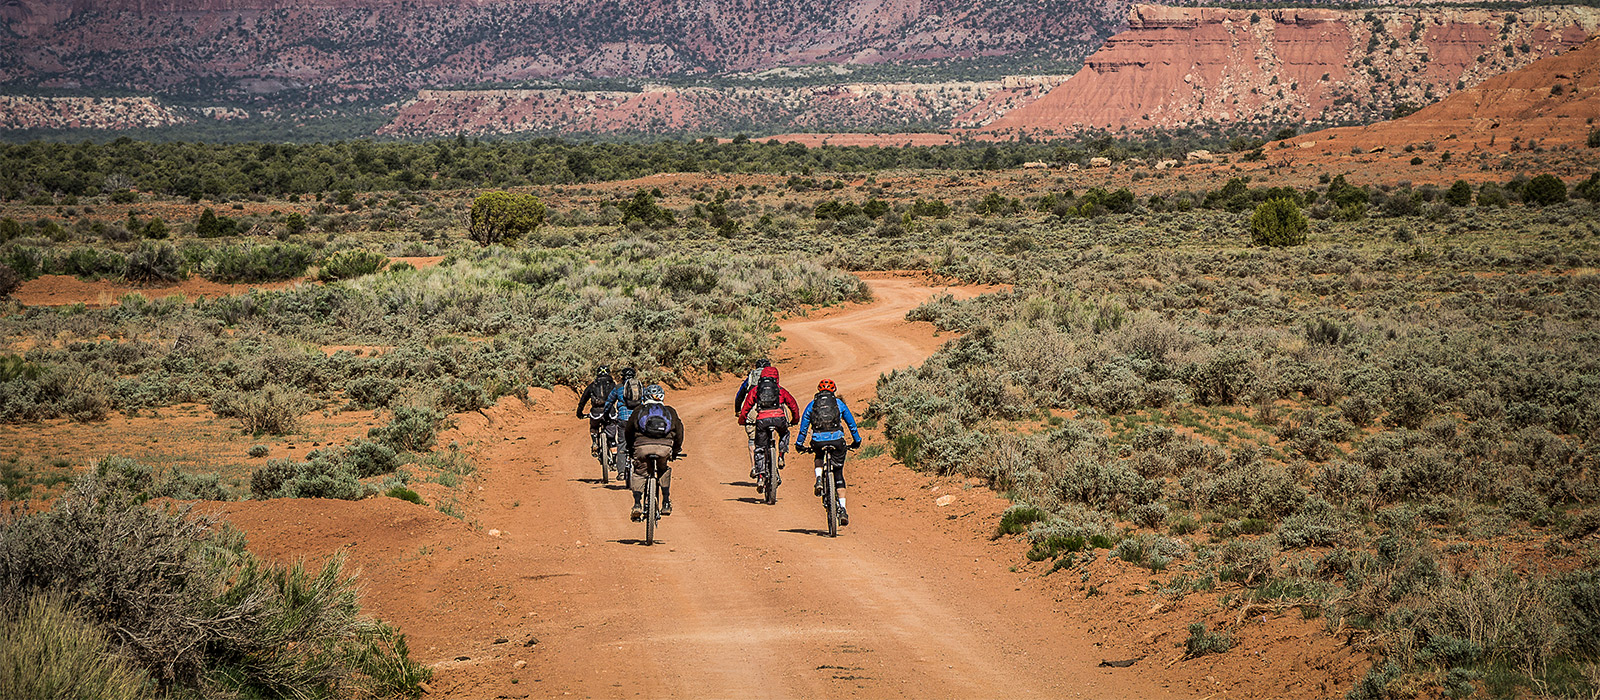 Riders traveling through a beautiful desert.